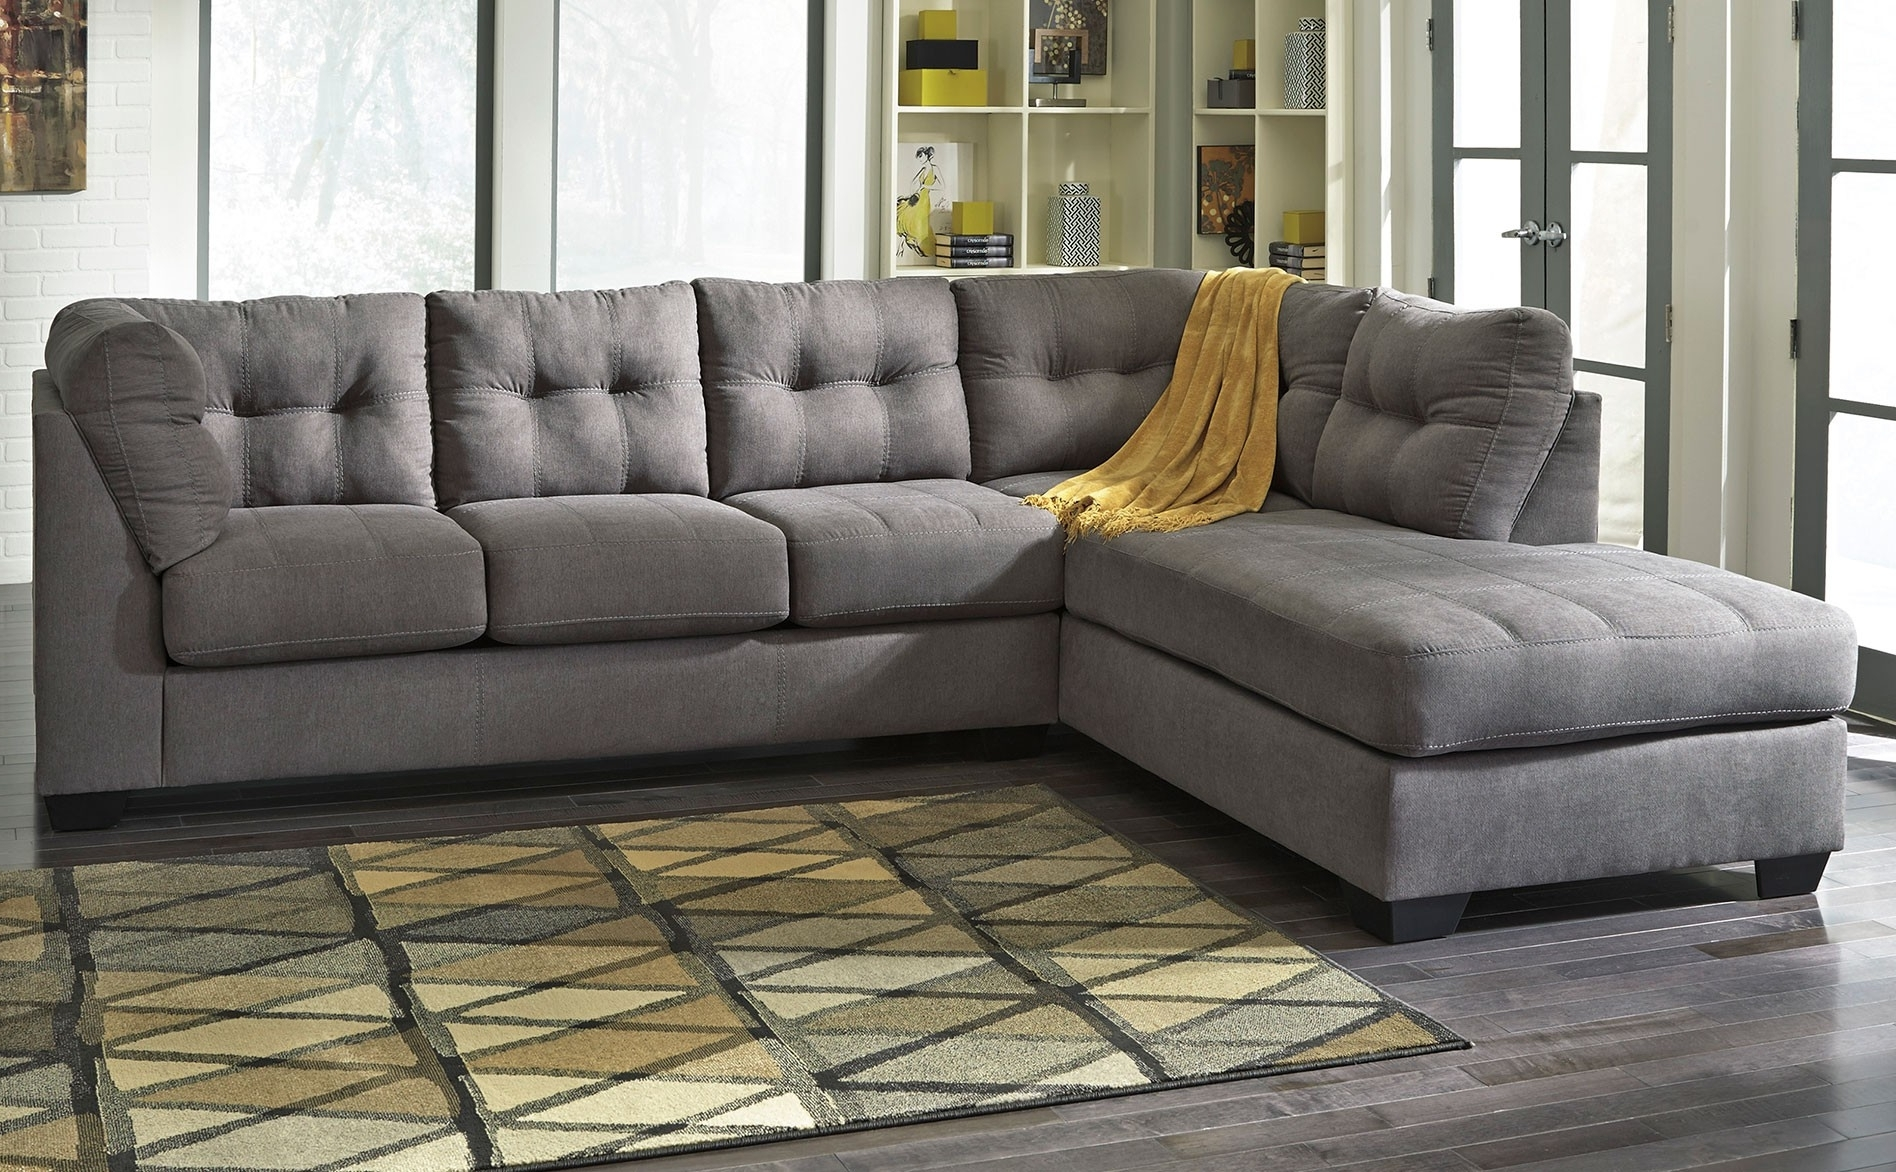 Fashionable Sofas: Mesmerizing Macys Sectional Sofa For Best Living Room Decor In Tufted Sofas With Chaise (View 5 of 15)